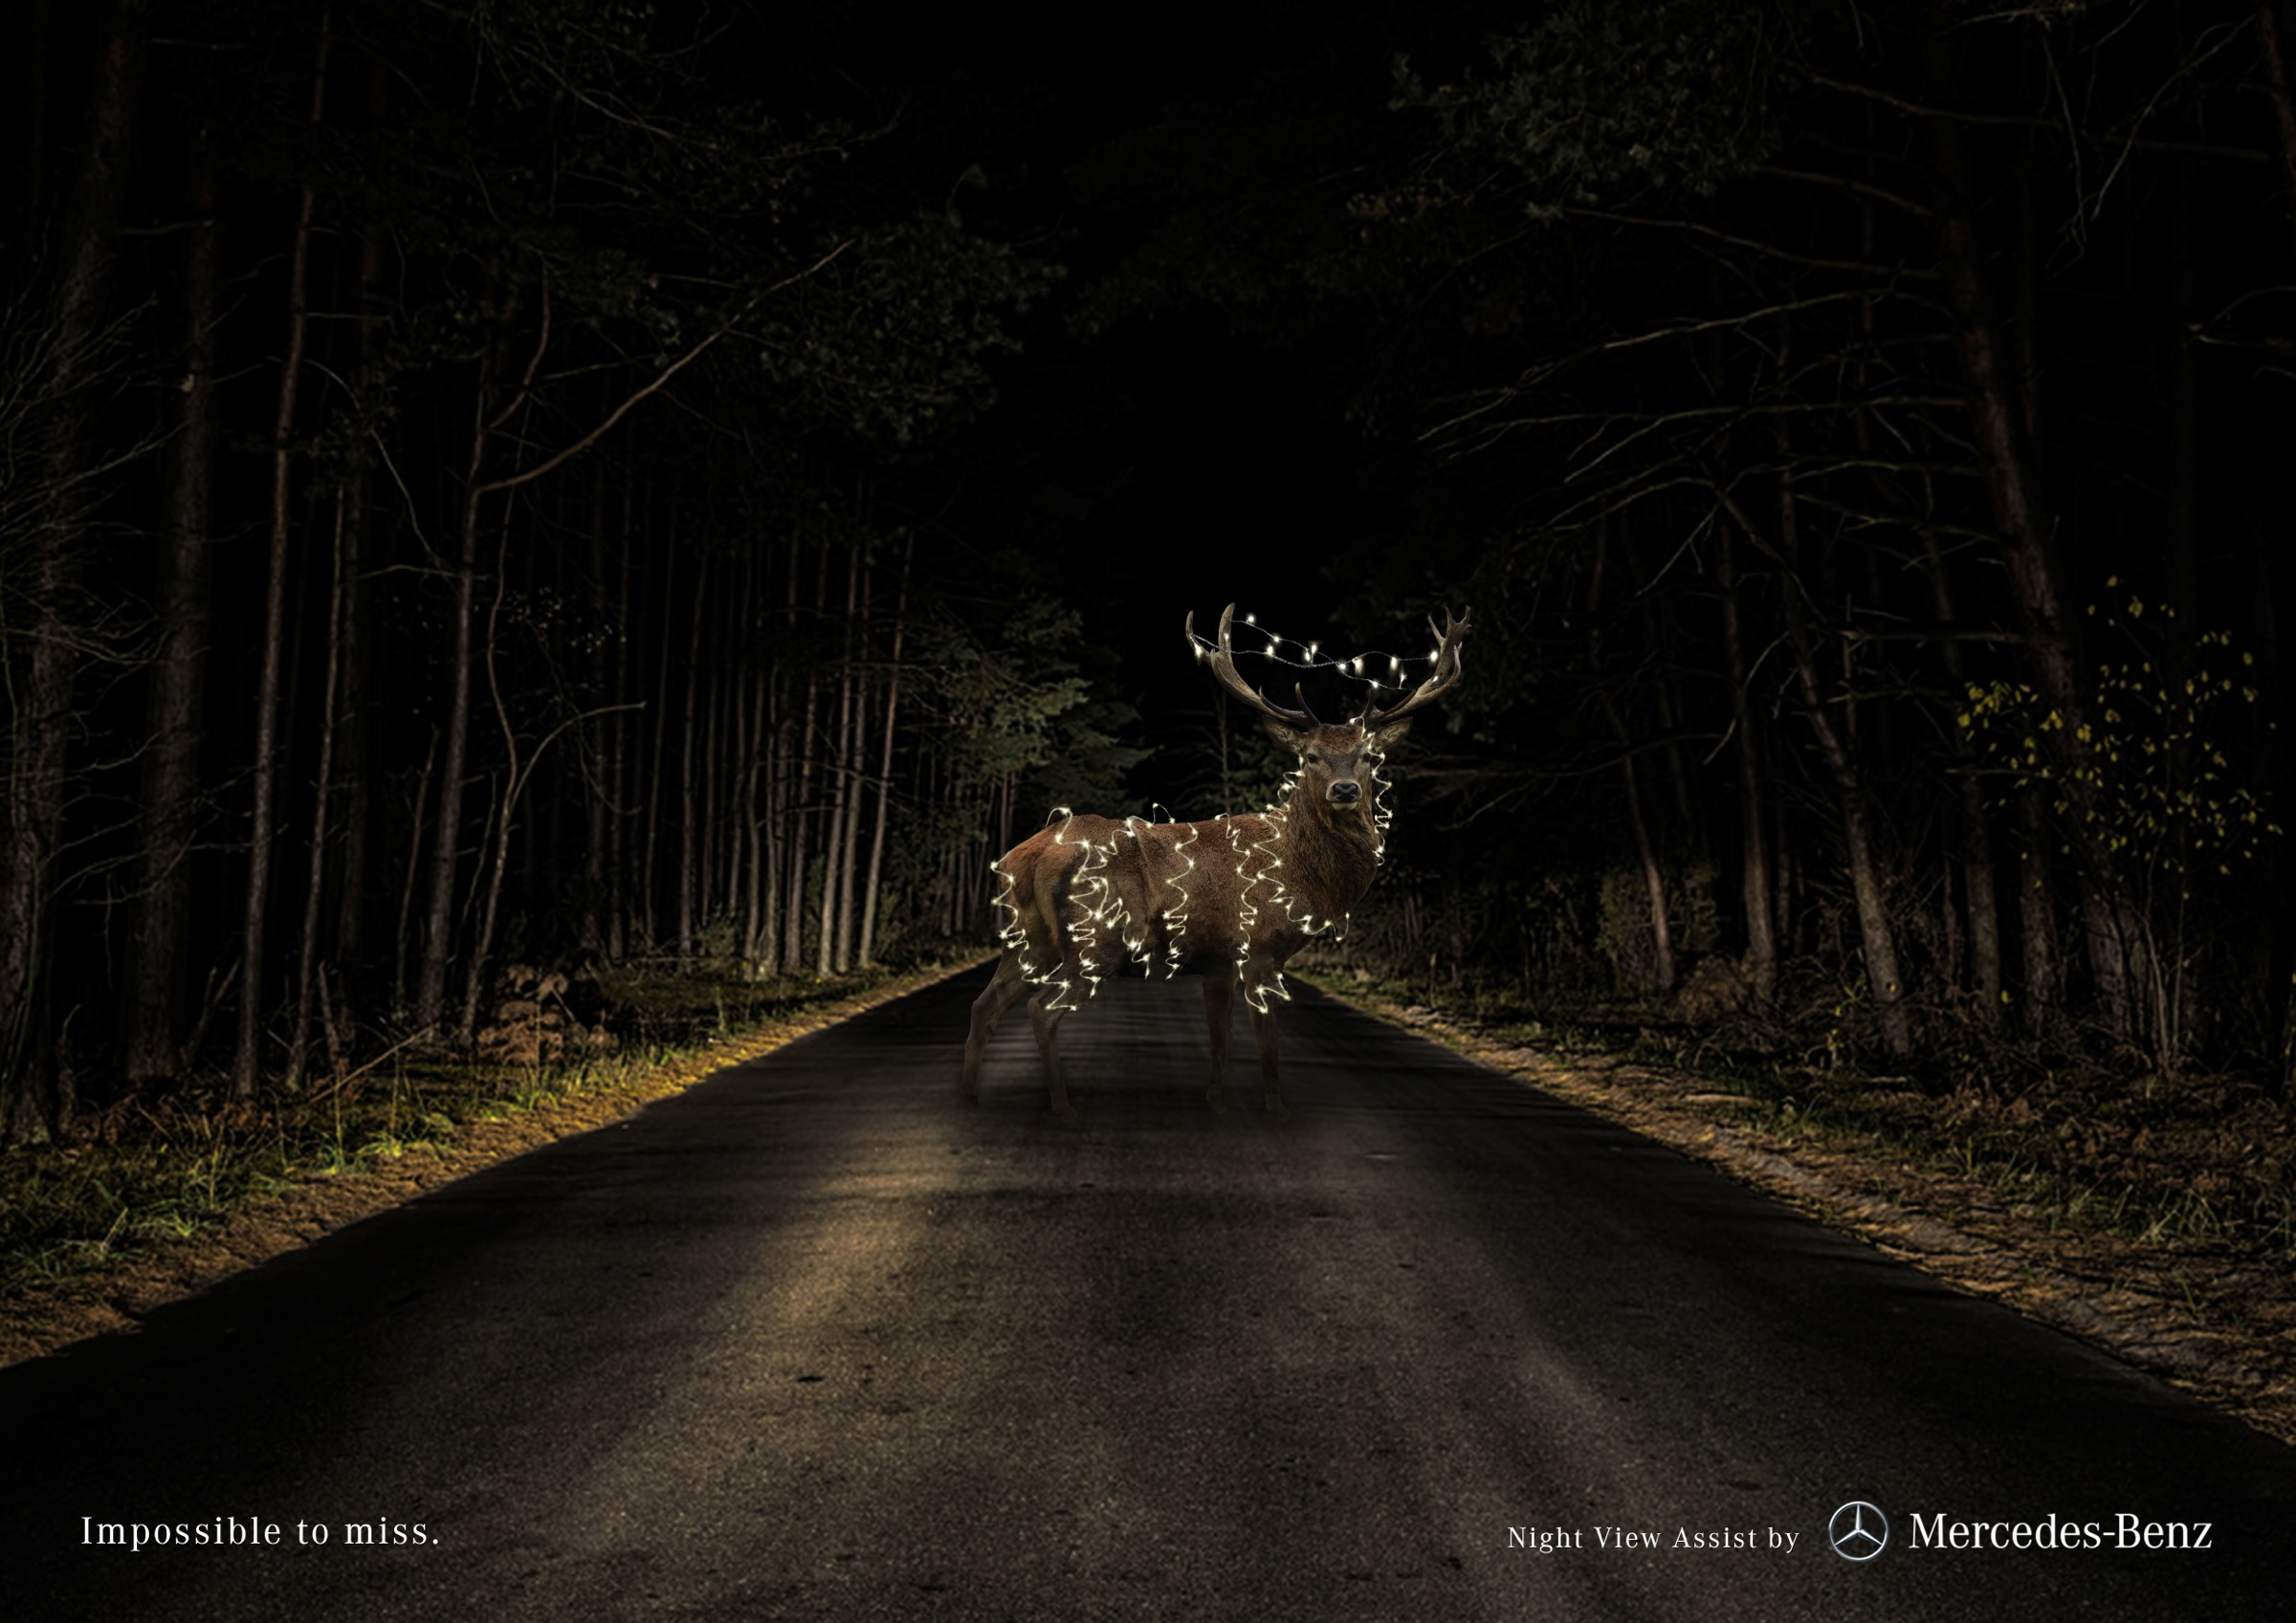 Mercedes Print Advert By Miami Ad School: Deer | Ads of the World™